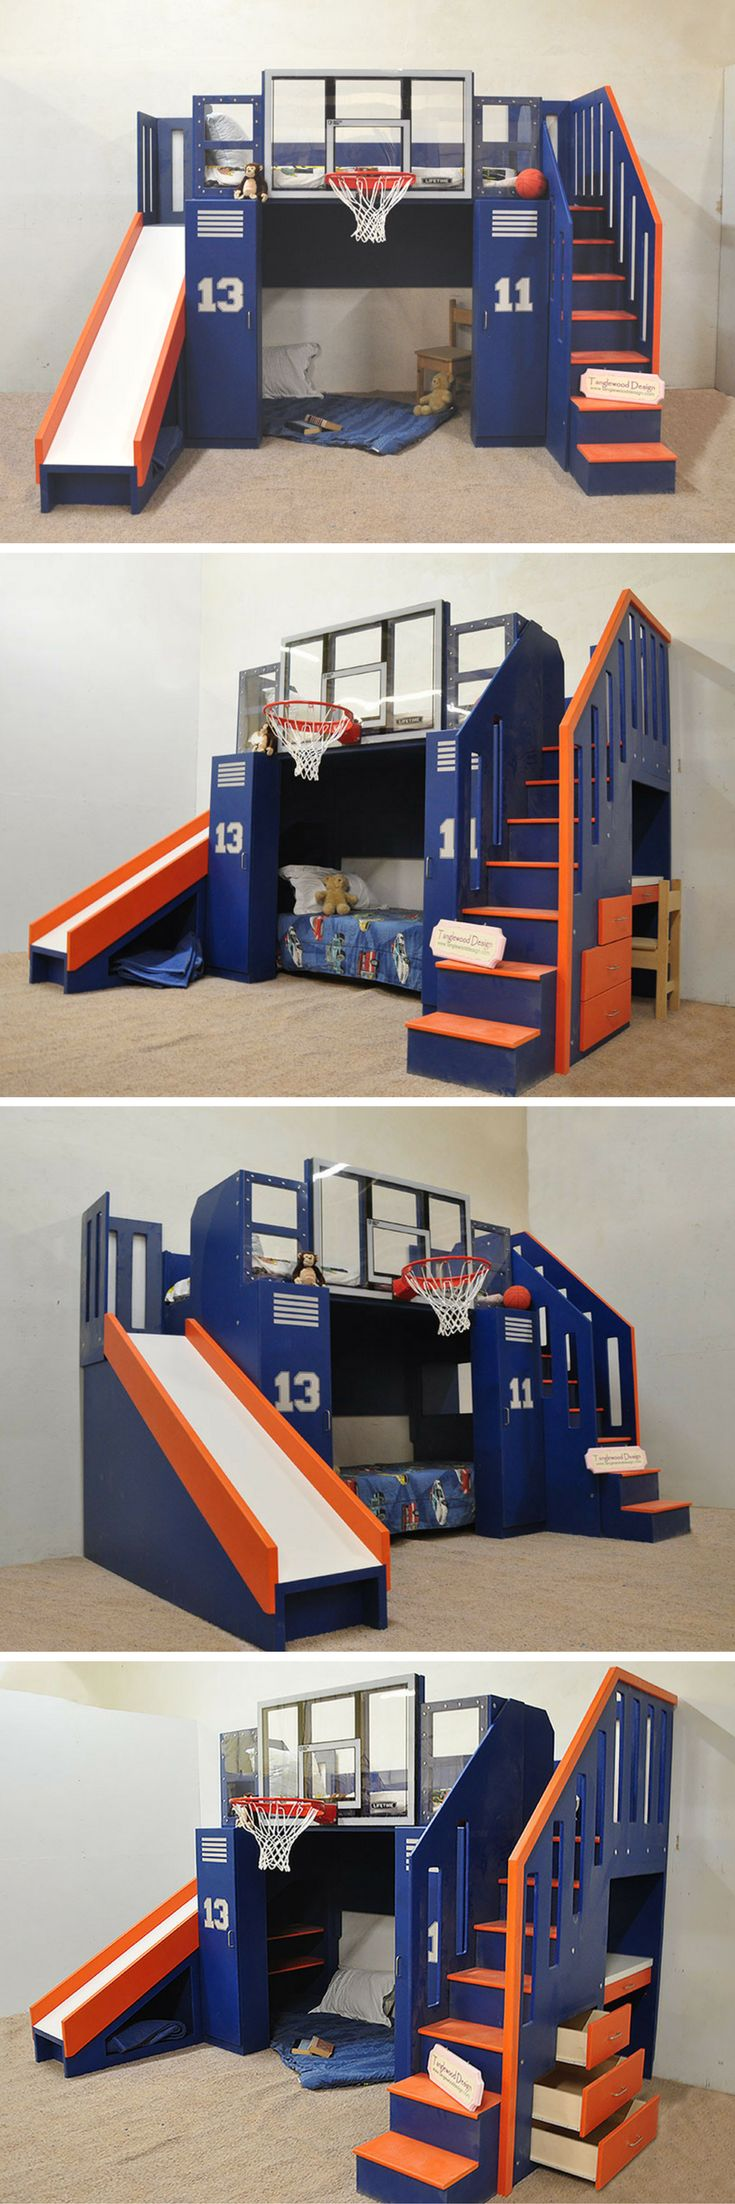 Get the Ultimate in function, and the Ultimate in fun! The Ultimate Basketball Bunk Bed has loads of built in storage to make parents happy, and a built in NBA sized, shatter proof hoop, as well as a slide to entertain the kids! This incredible design can act as a bunk bed, a loft bed, or a kids indoor playhouse. It's great for the sports loving boy or girl in your life, and can even be customized with your child's name and favorite team colors! Click to learn more!